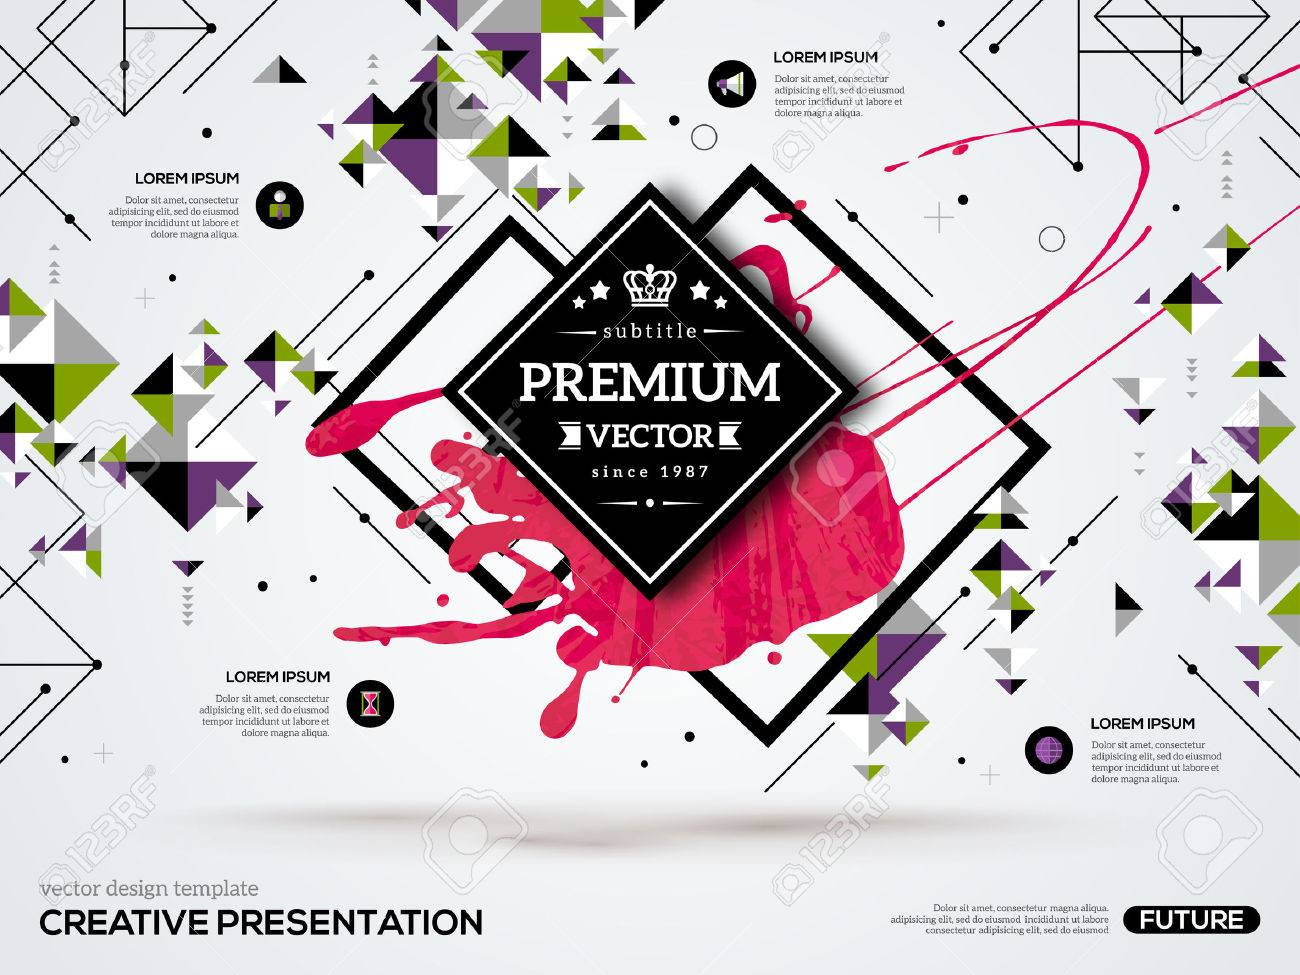 Poster design using 3d objects - Shape 3d Abstract Background With Paint Stain And Geometric Rhombus Shapes Vector Design Layout